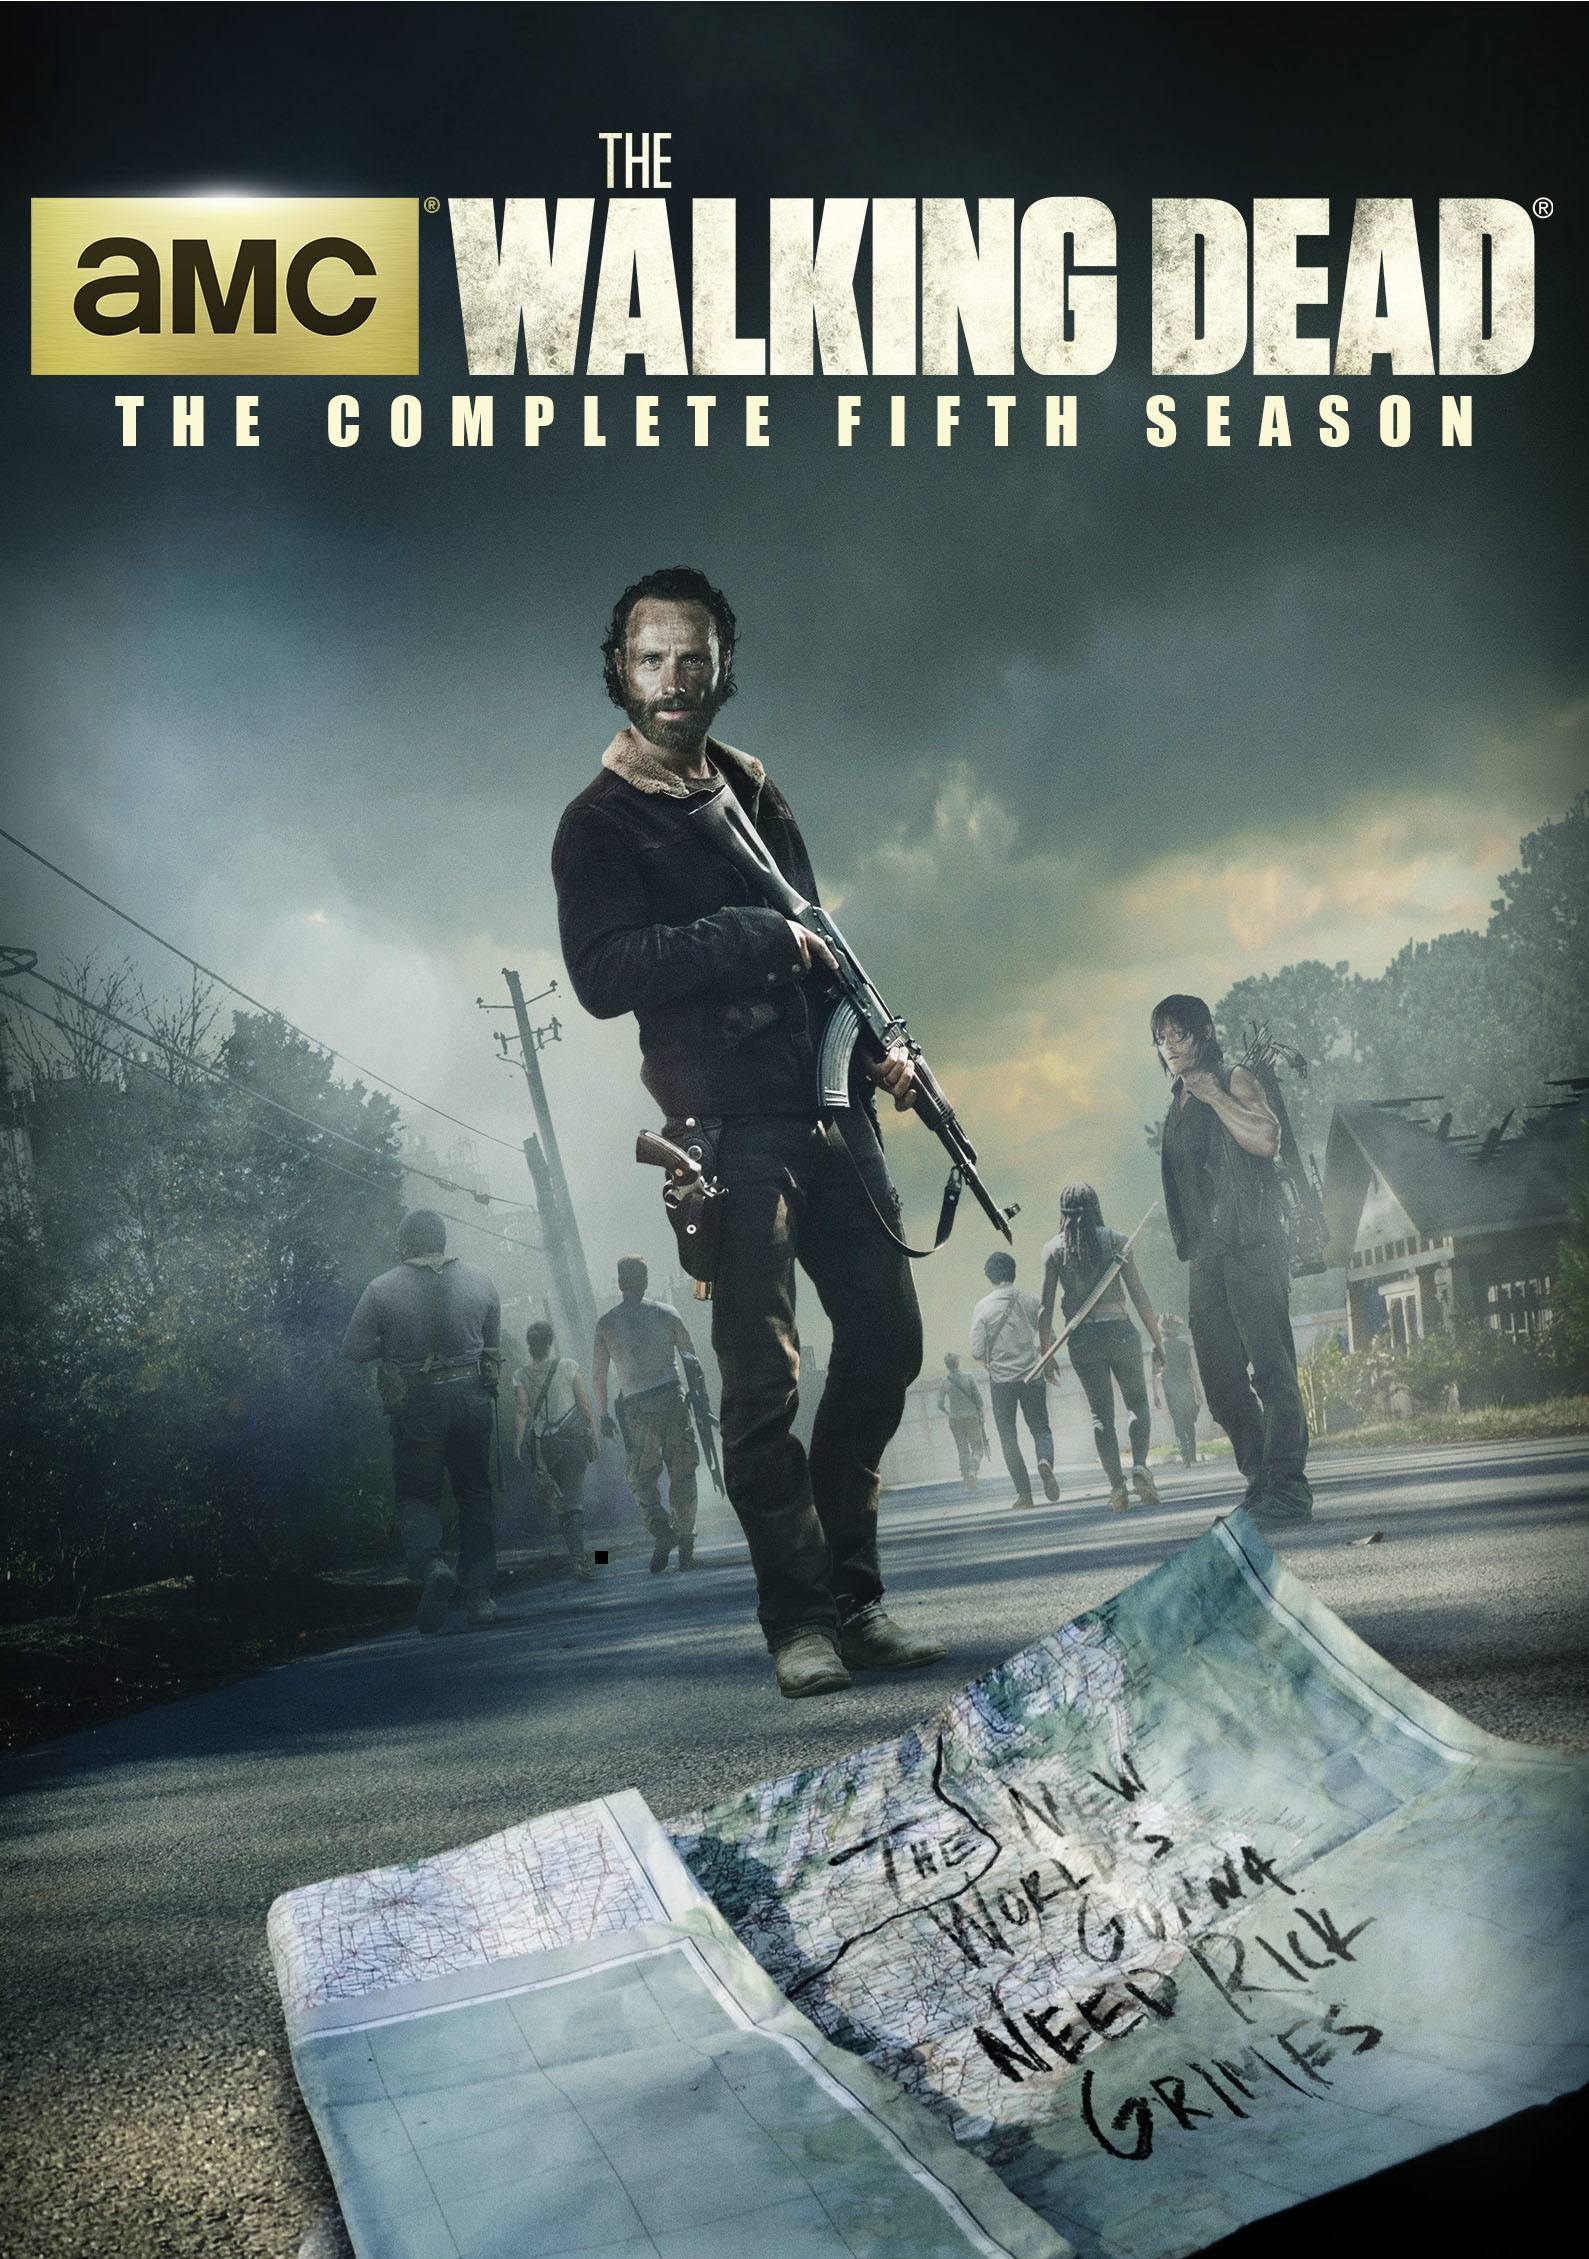 the walking dead season 5 box set hits august 2015 images